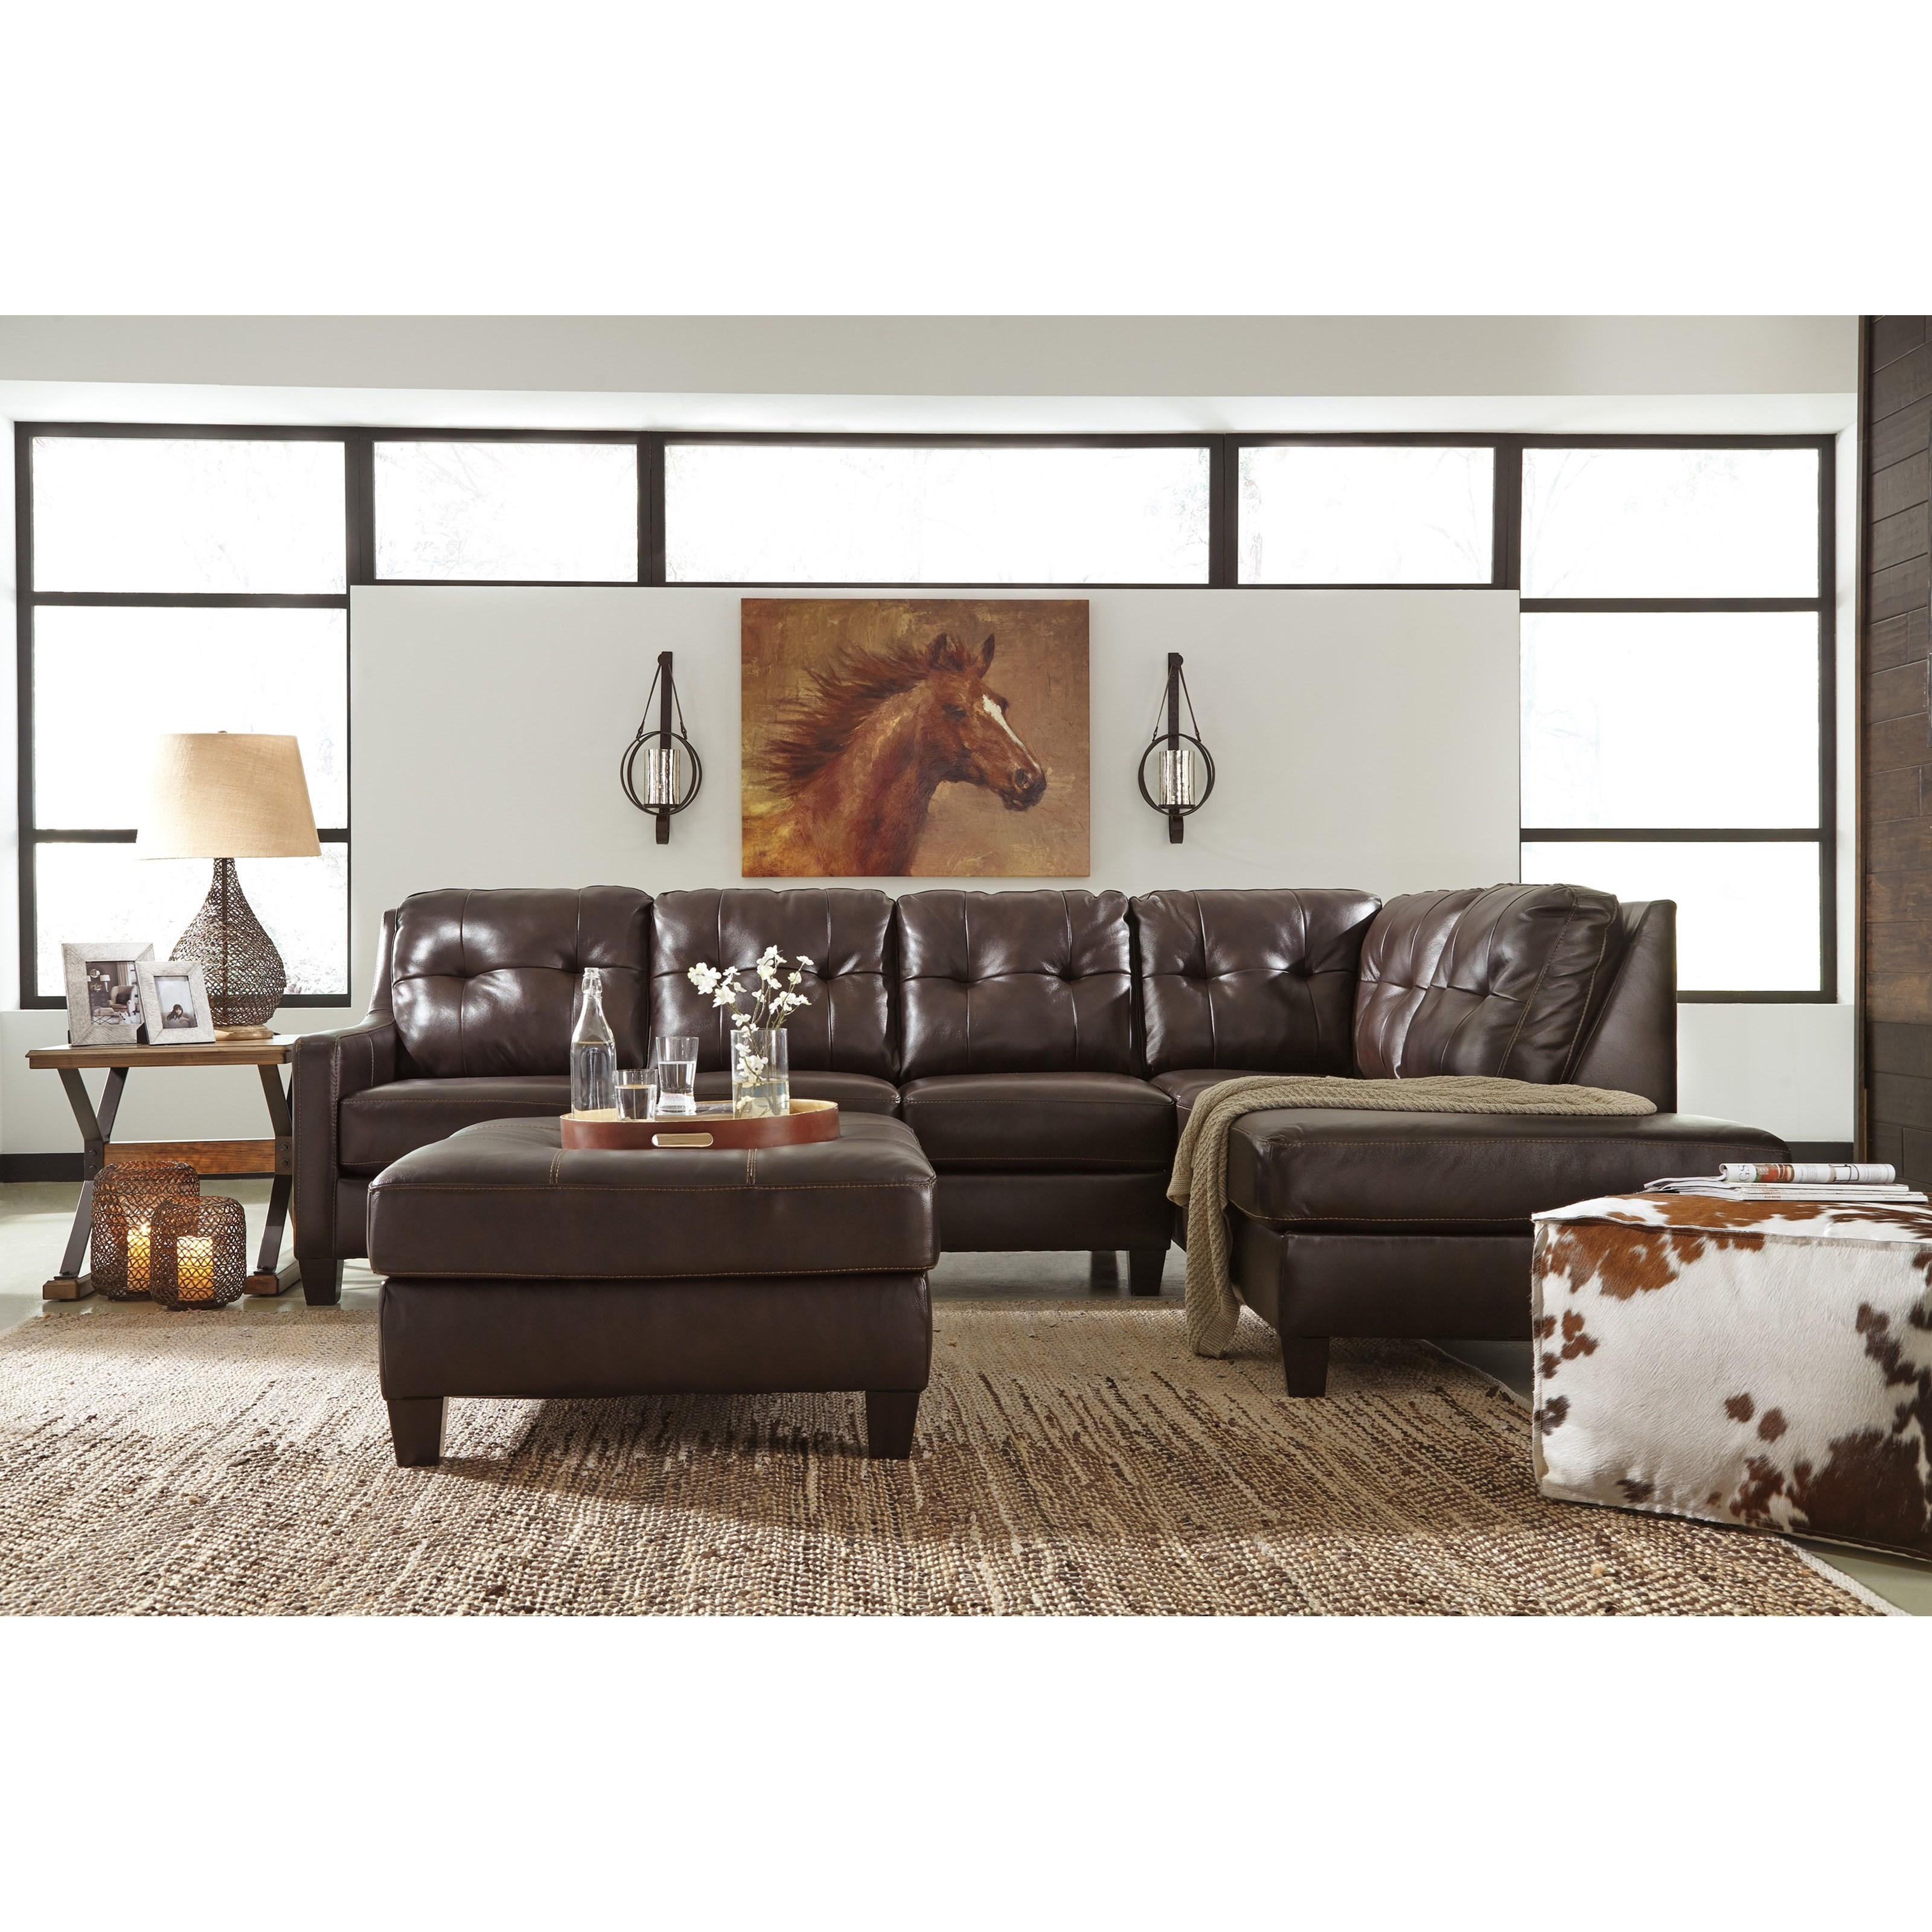 Signature Design By Ashley O Kean Stationary Living Room Group Suburban Furniture Stationary